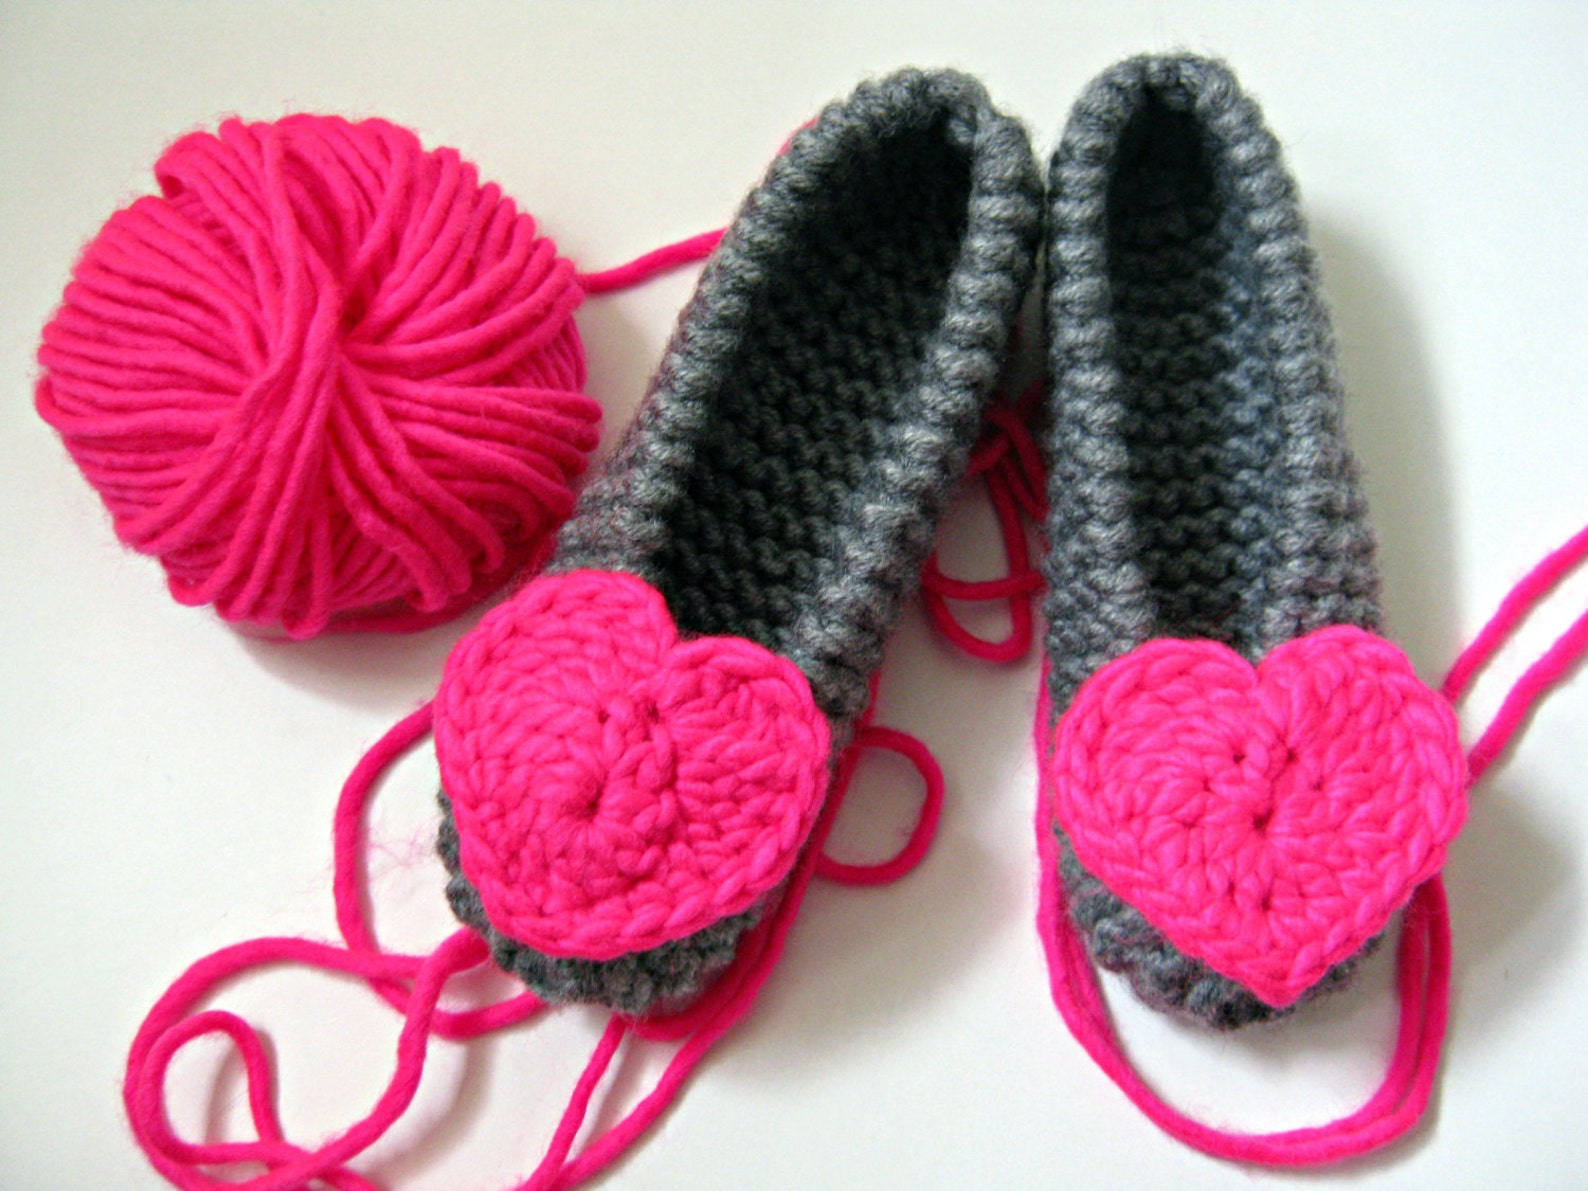 neon pink heart slippers, knitted ballet flats, girls slippers, womens slippers, houseshoes, wedding party gift, bridesmaid gift